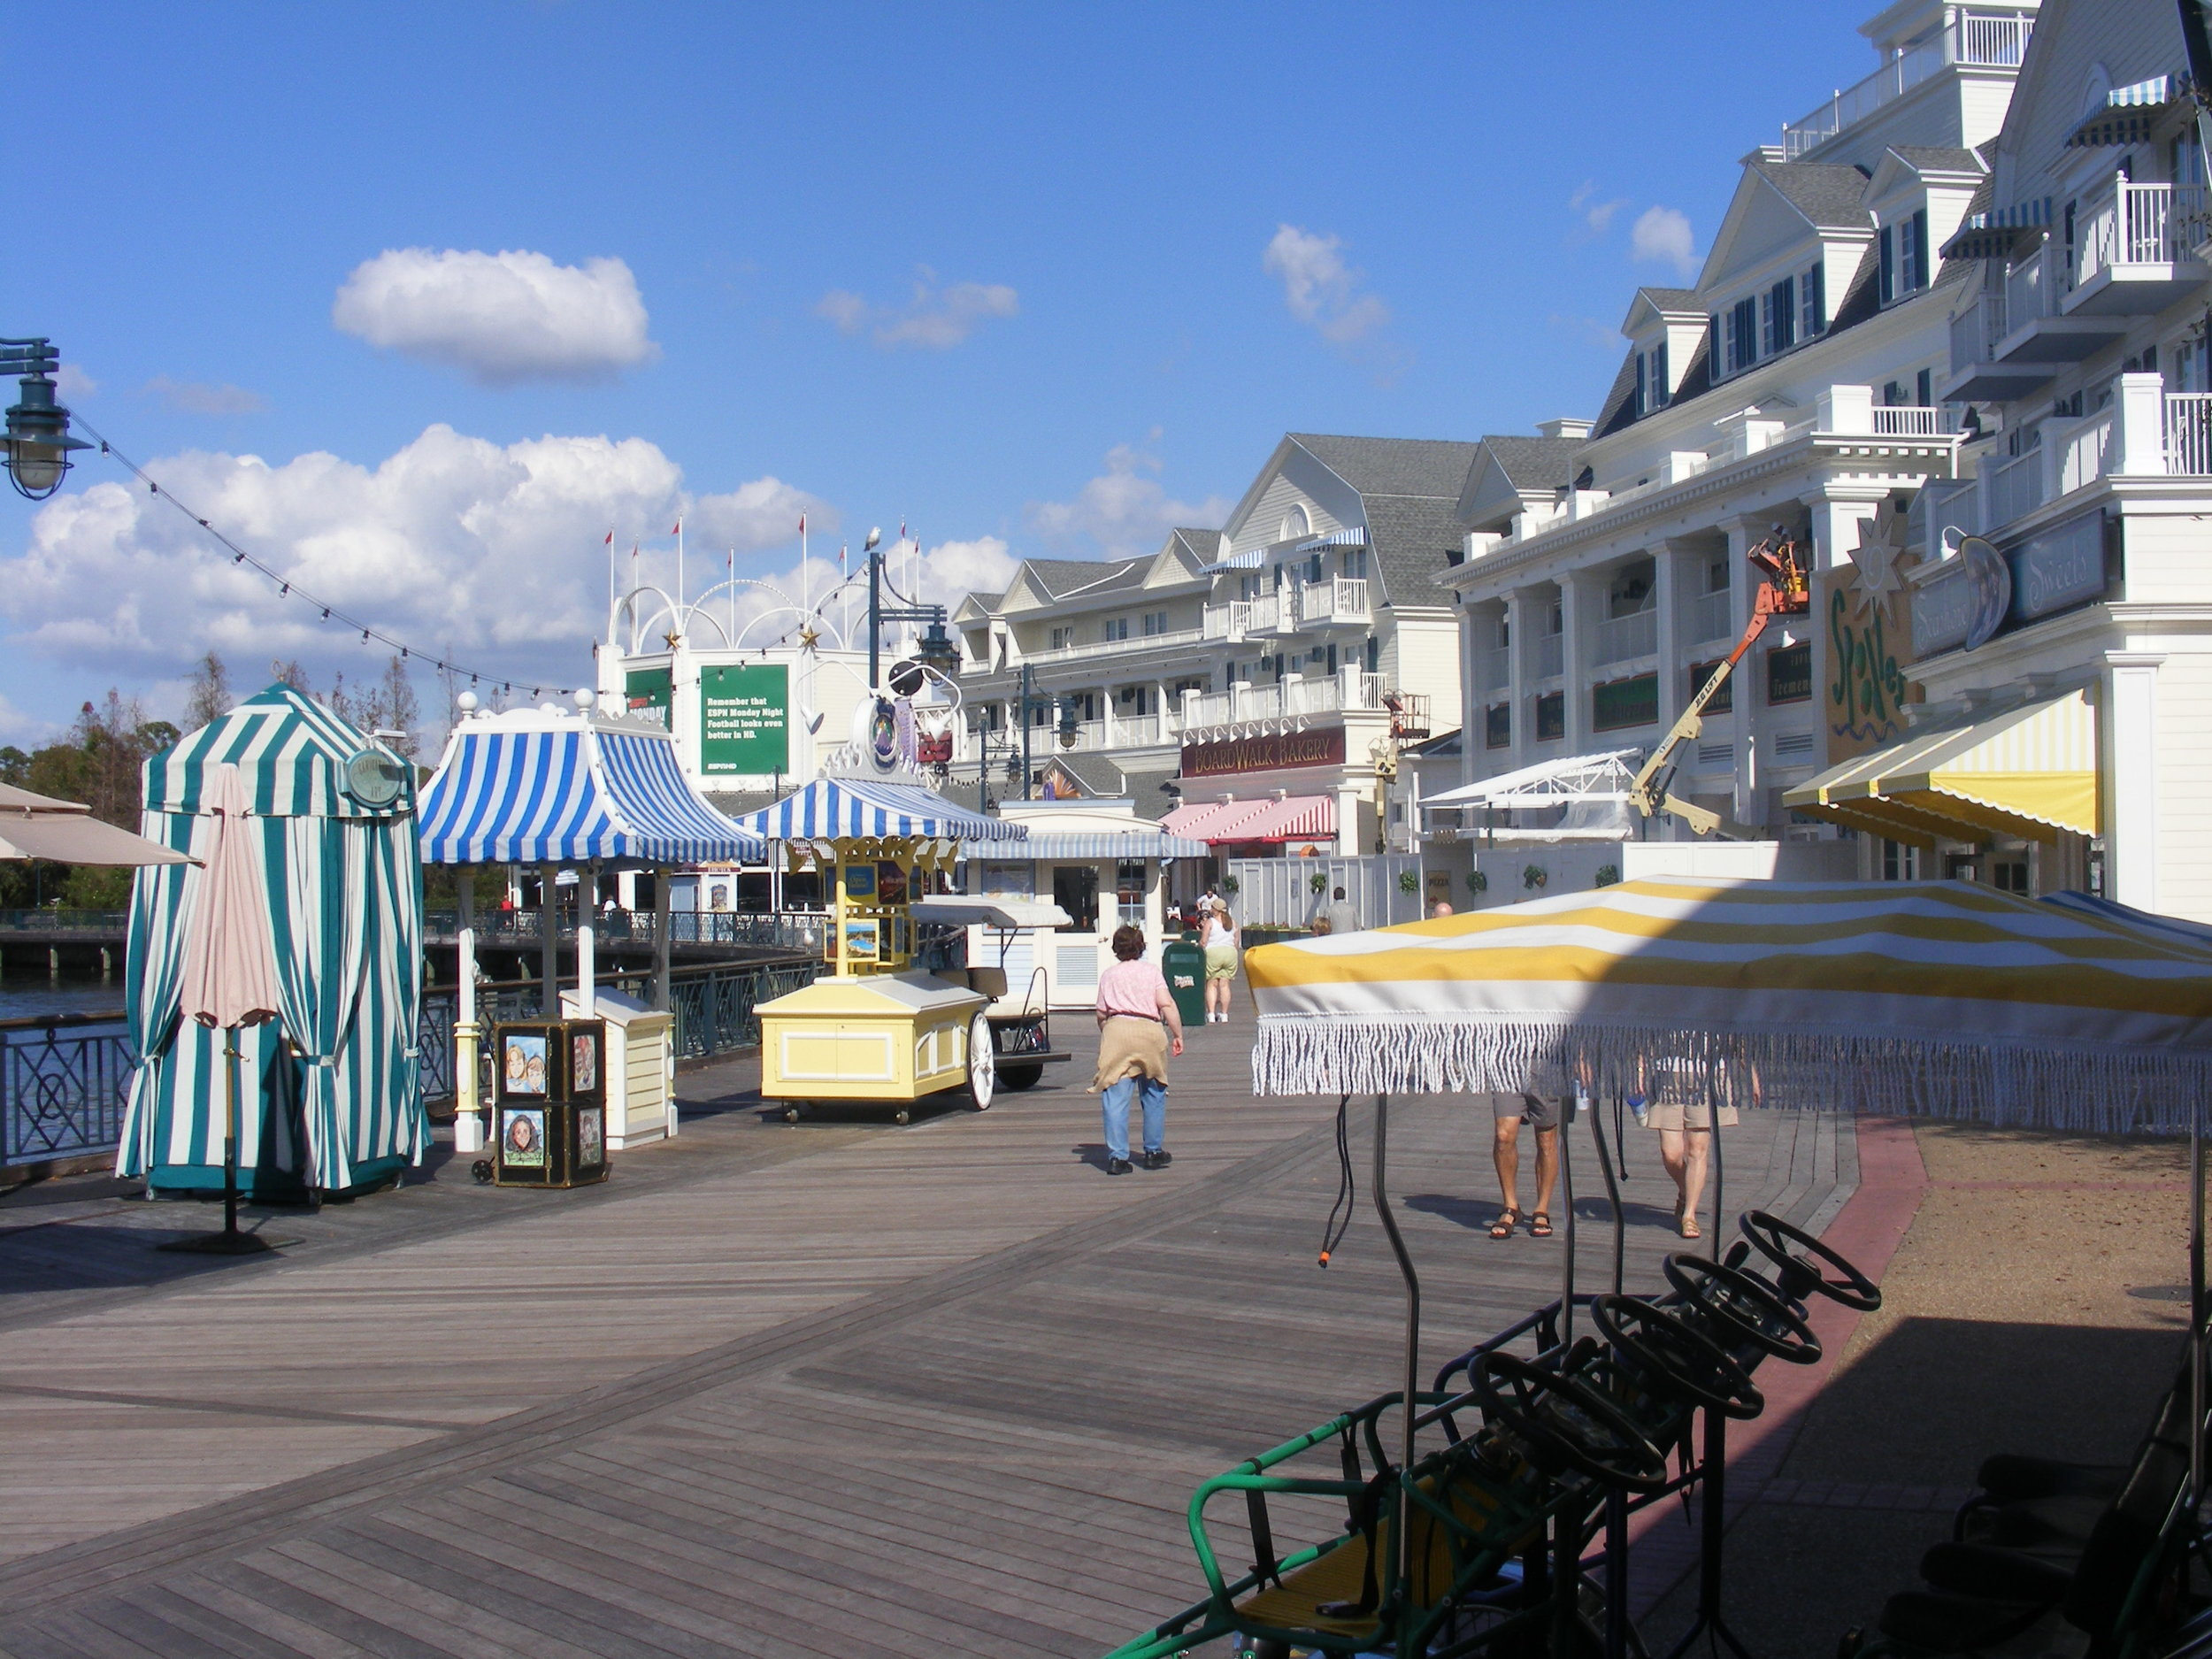 Promenade, Disney's BoardWalk